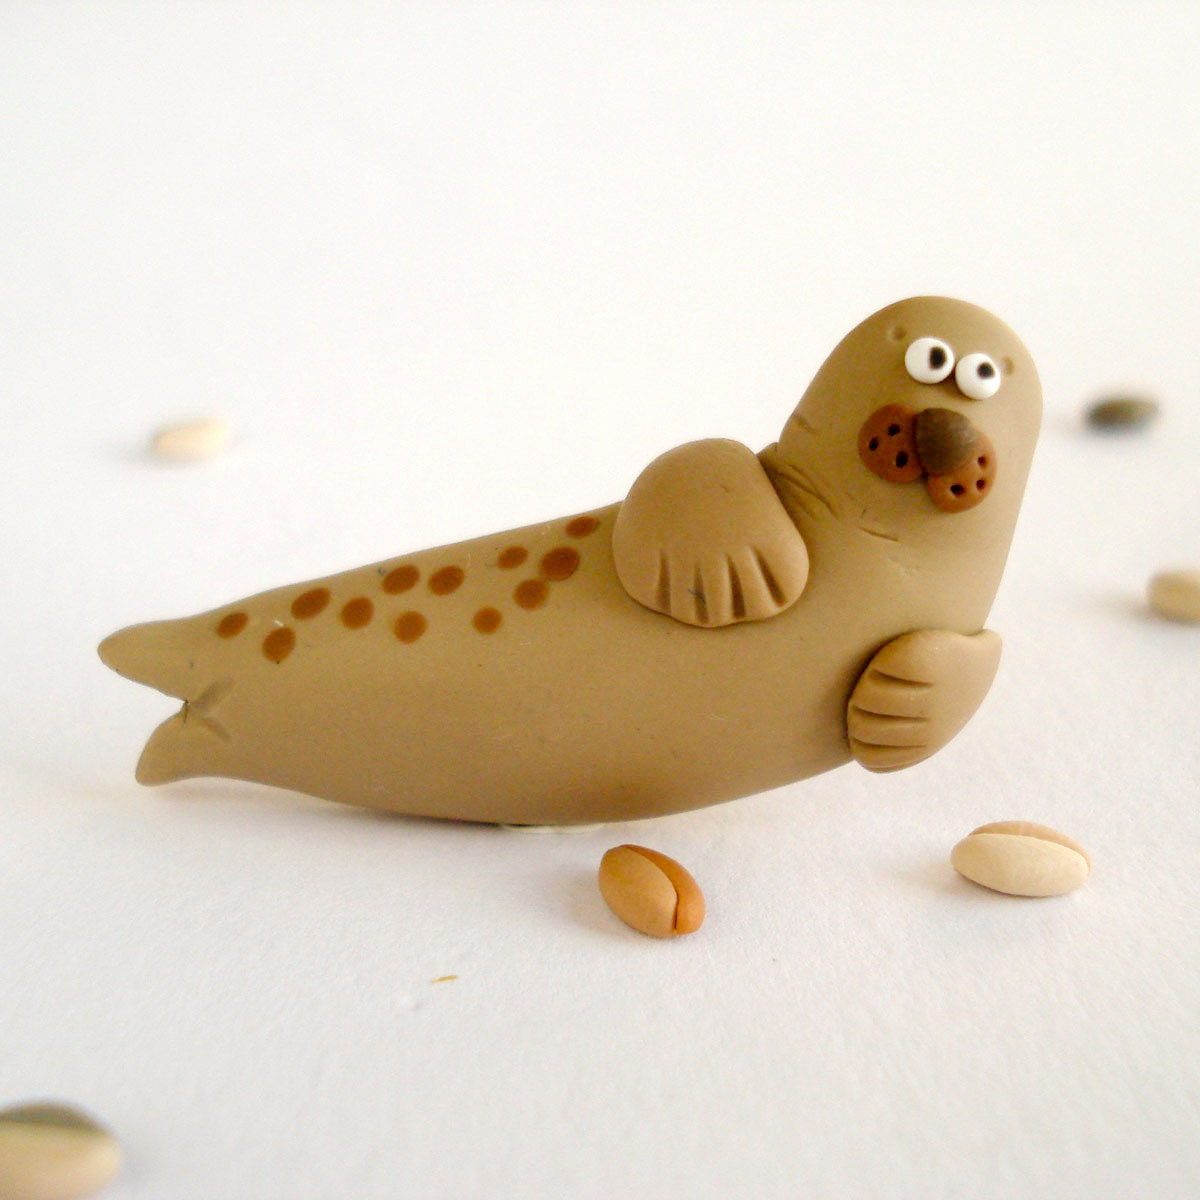 Seal Brooch Whimsical animal jewelry unisex - Thelittlecreatures